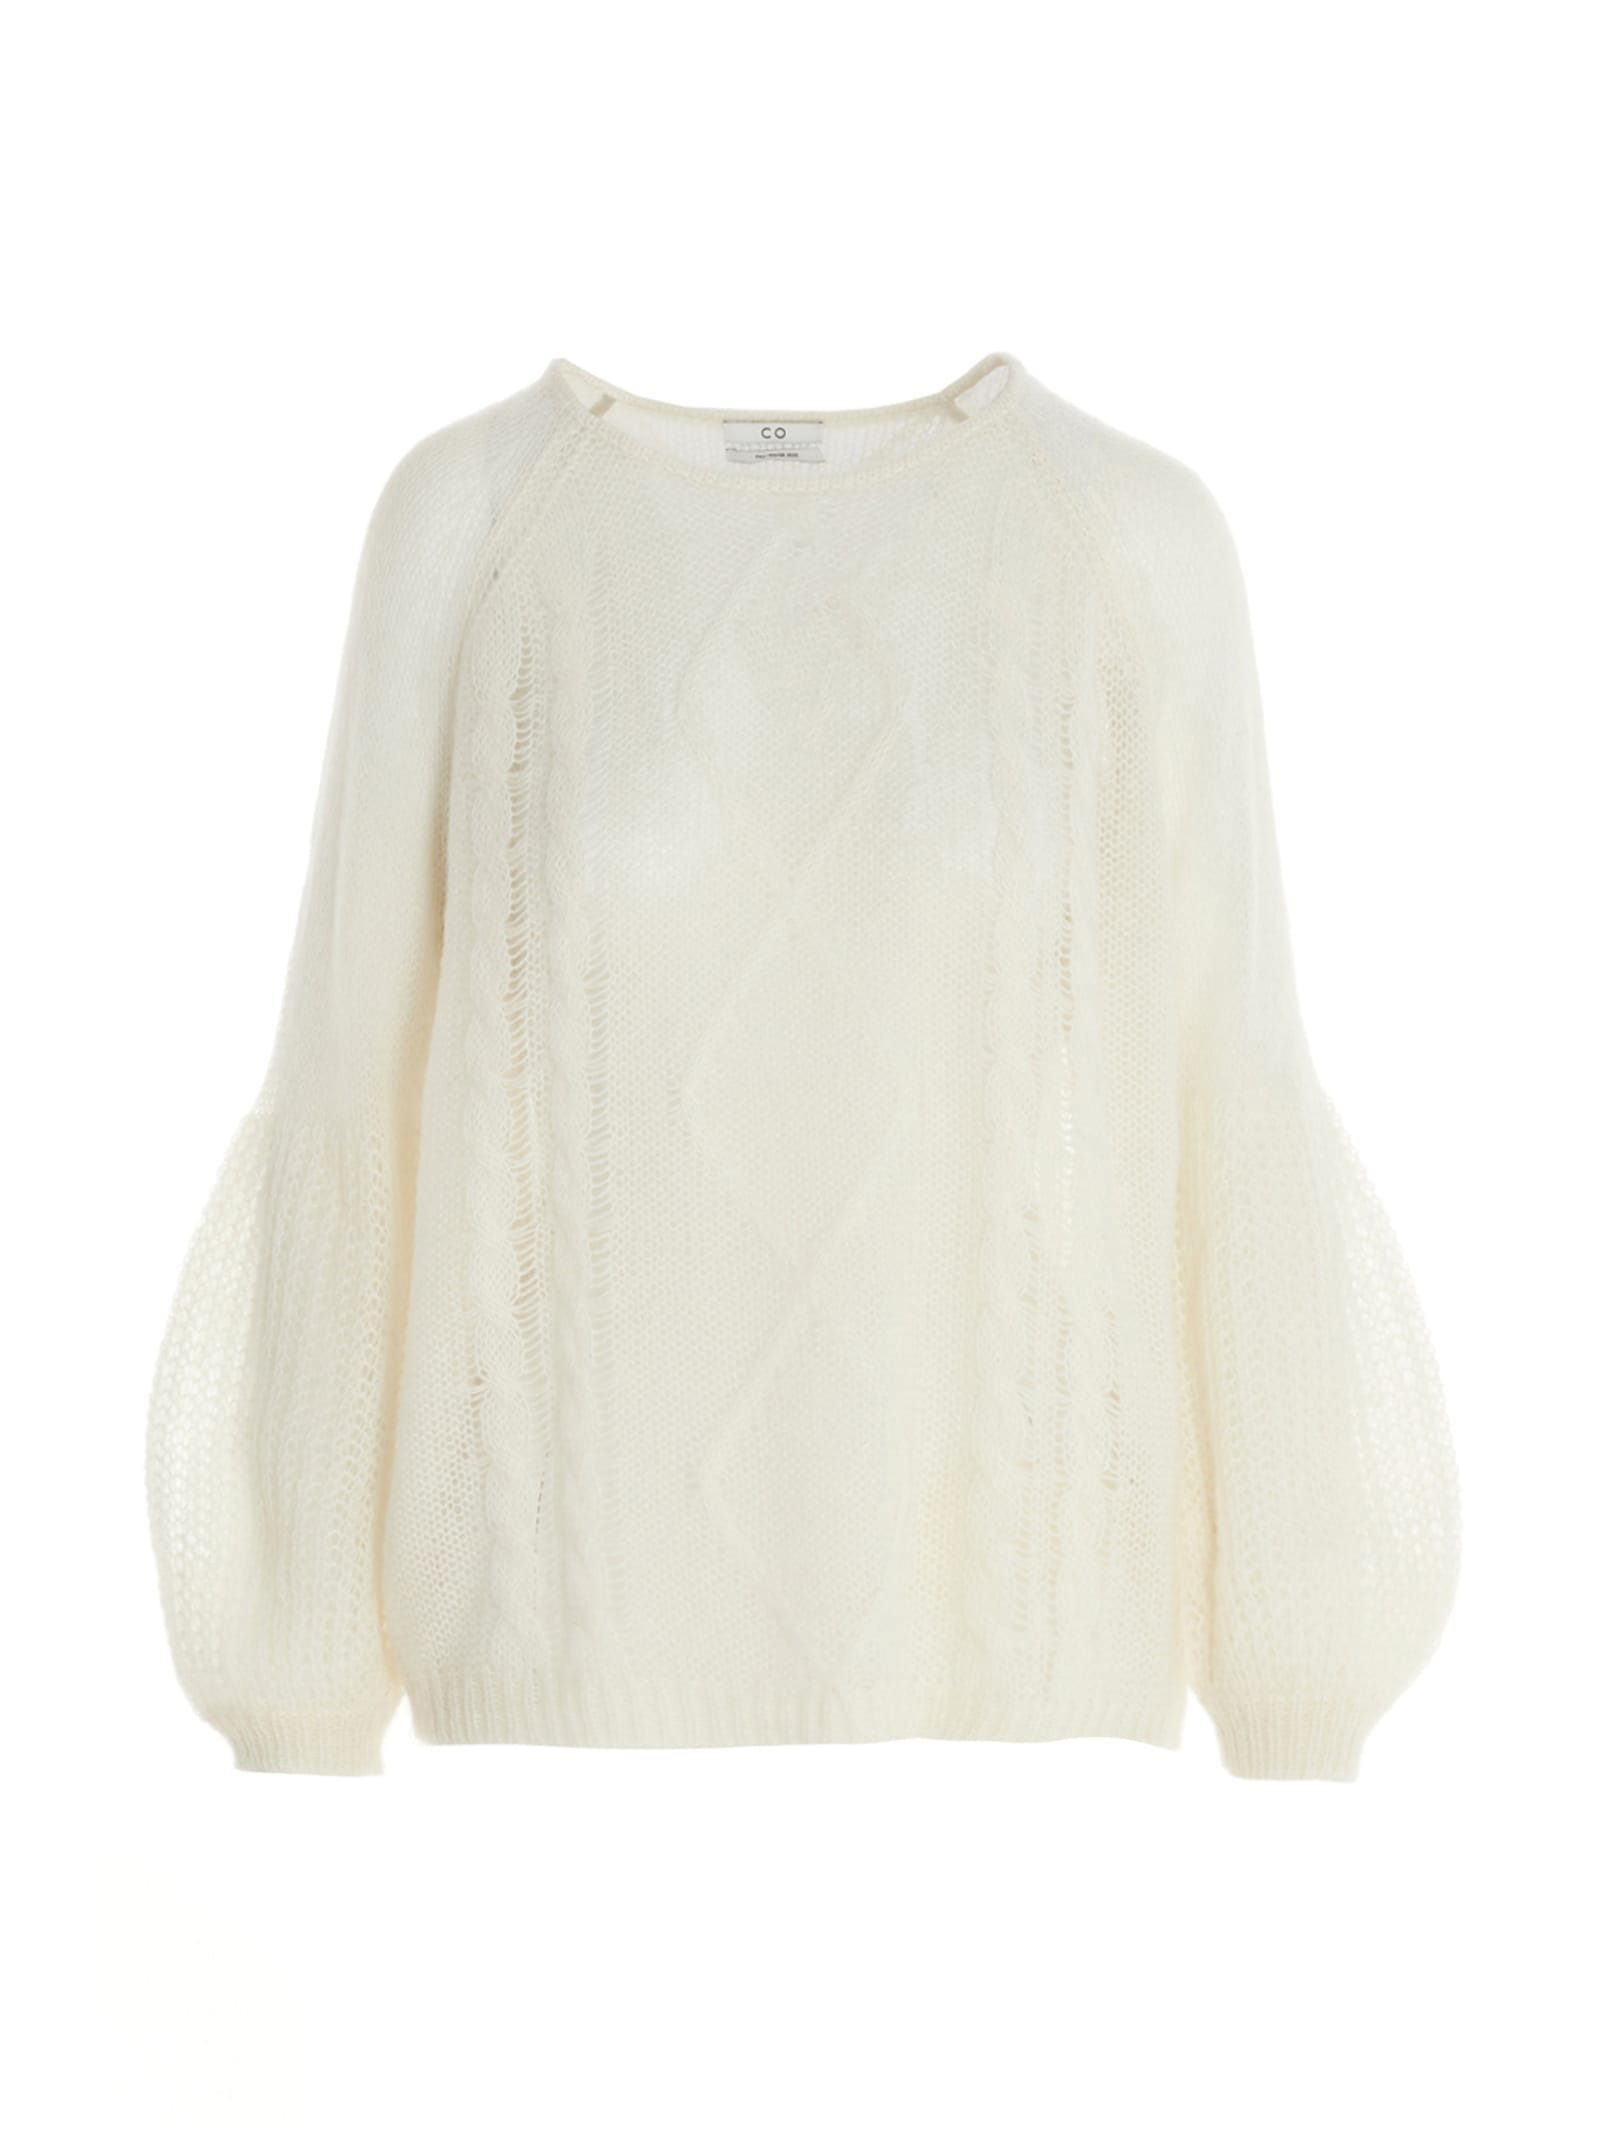 Co sheer Knit Sweater